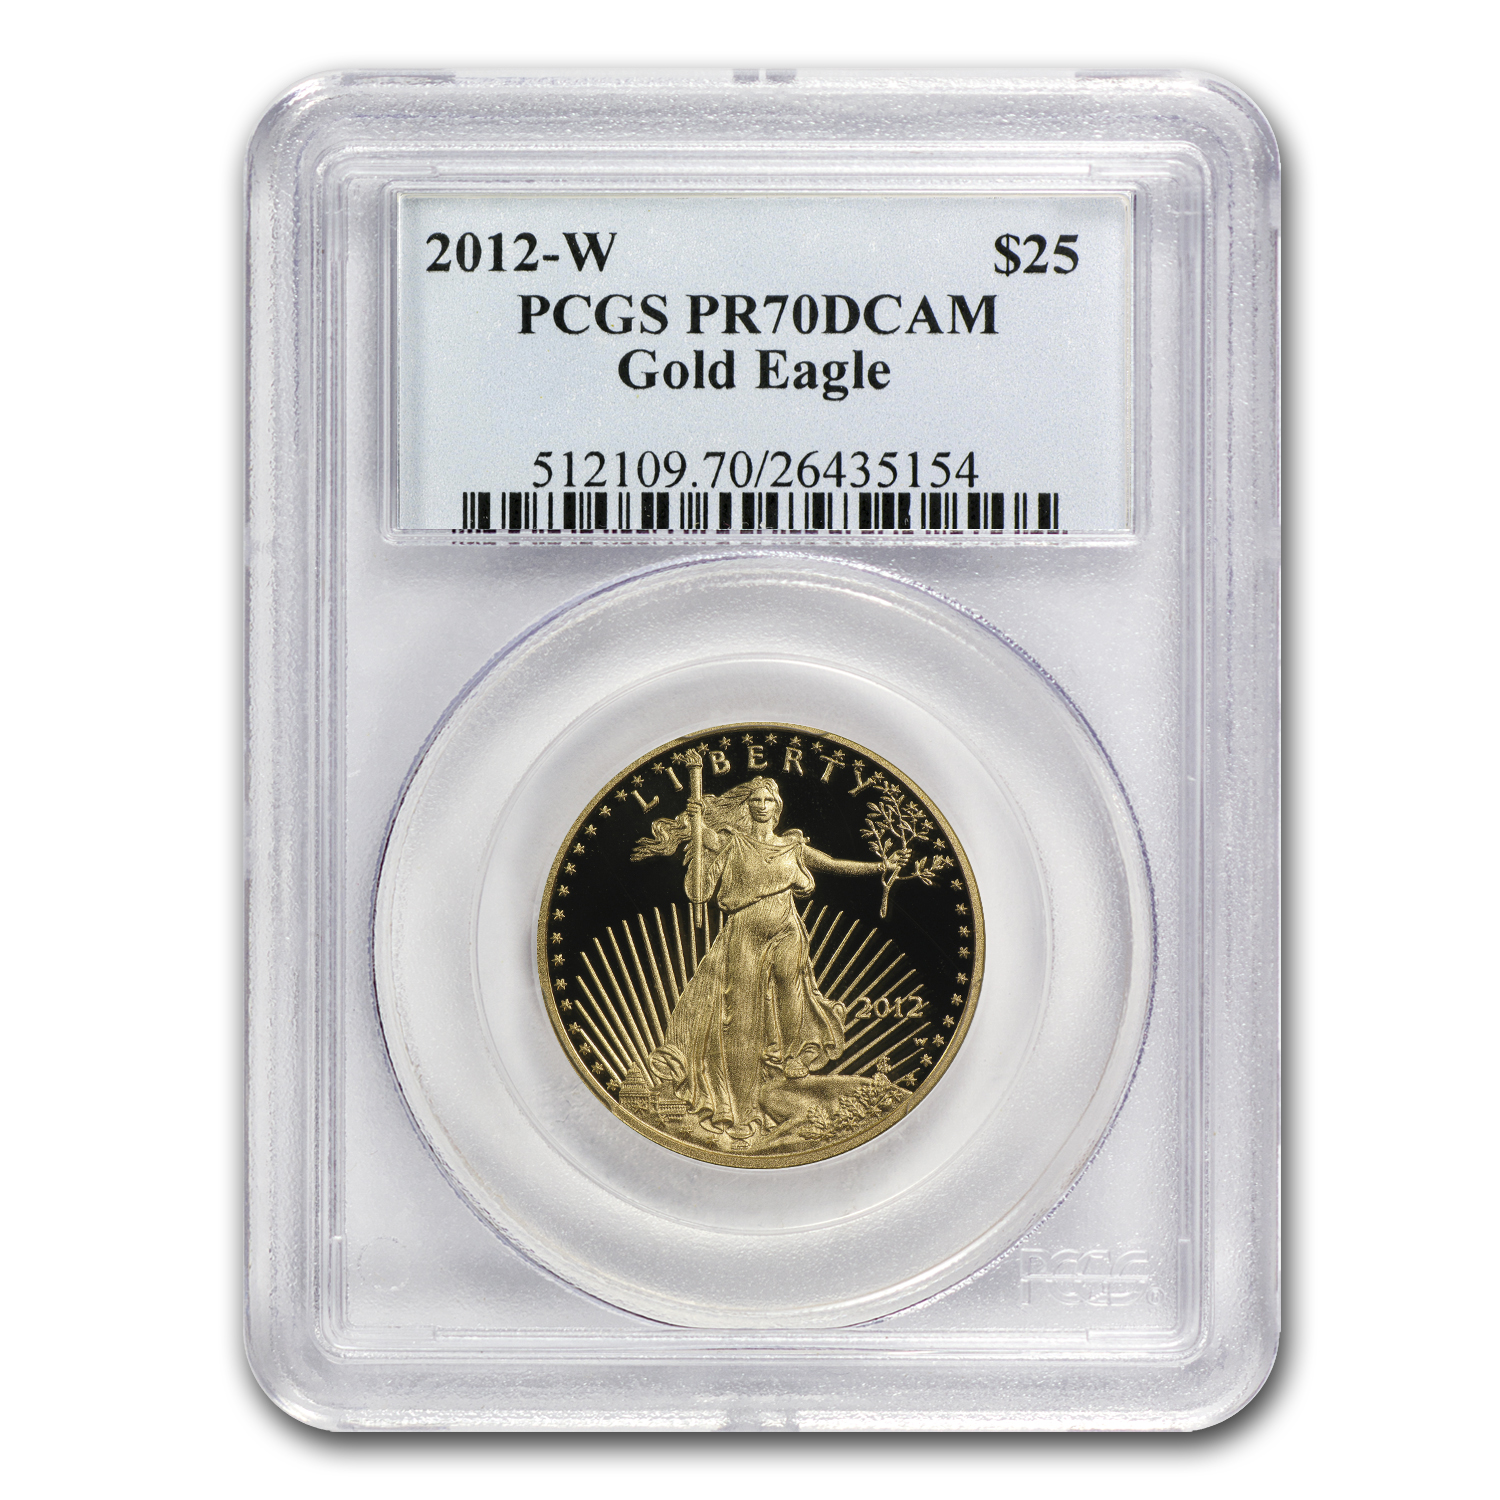 2012-W 1/2 oz Proof Gold American Eagle PR-70 PCGS